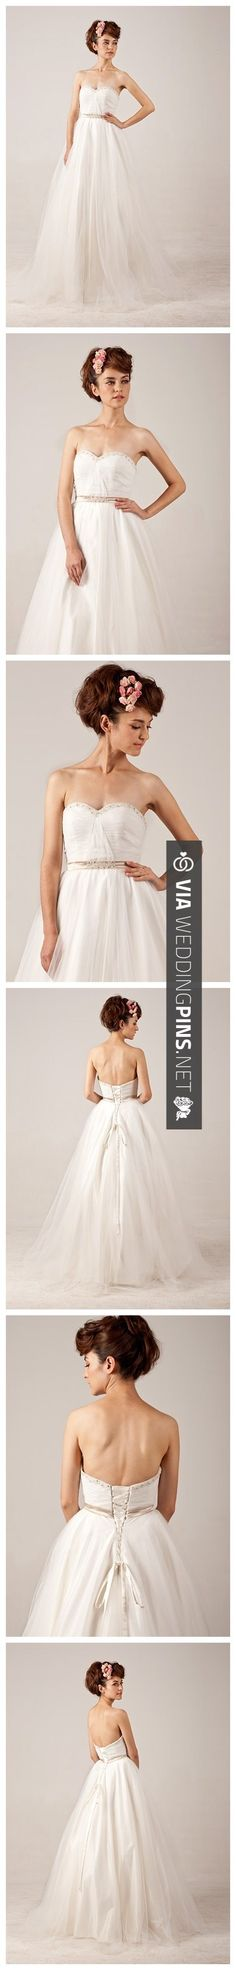 Nice! - Lace-up Ball Grown Beading Strapless Tulle Wedding Dress. | CHECK OUT MORE IDEAS AT WEDDINGPINS.NET | #weddings #weddingplanning #coolideas #events #forweddings #weddingplaces #romance #beauty #planners #weddingdestinations #travel #romanticplaces #eventplanners #weddingdress #weddingcake #brides #grooms #weddinginvitations